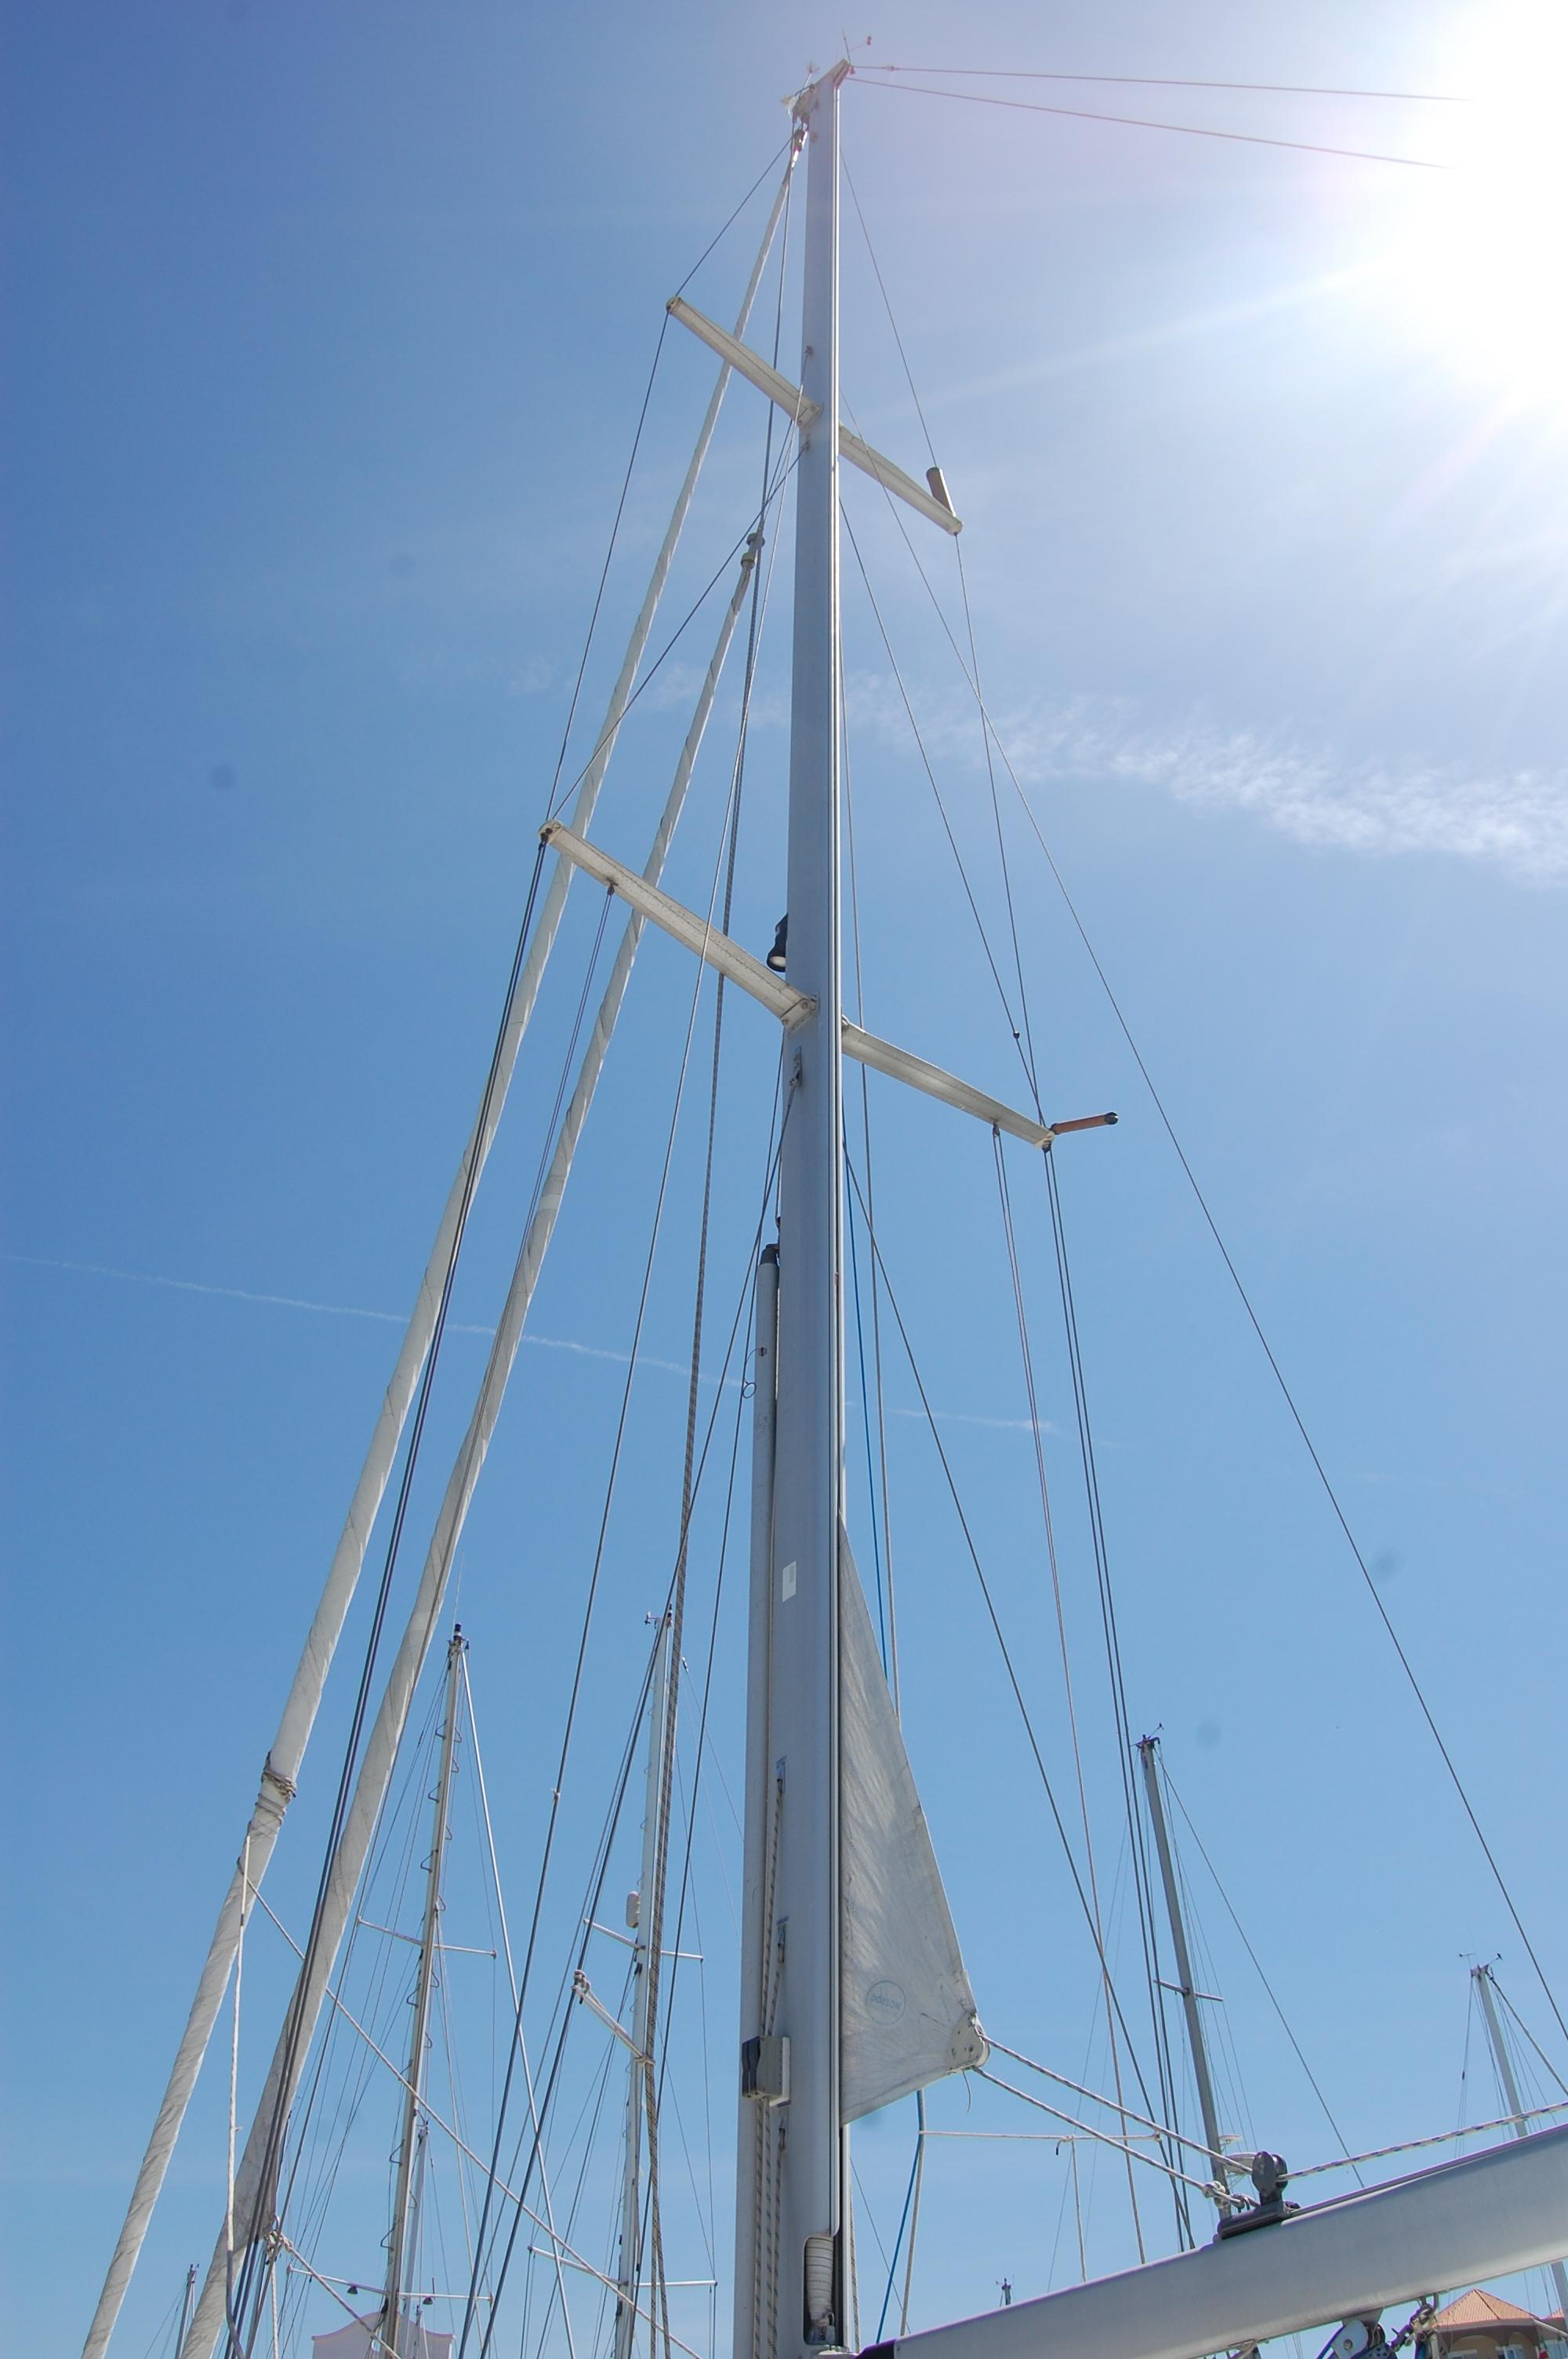 46' Maple Leaf Queen Cutter+Photo 18